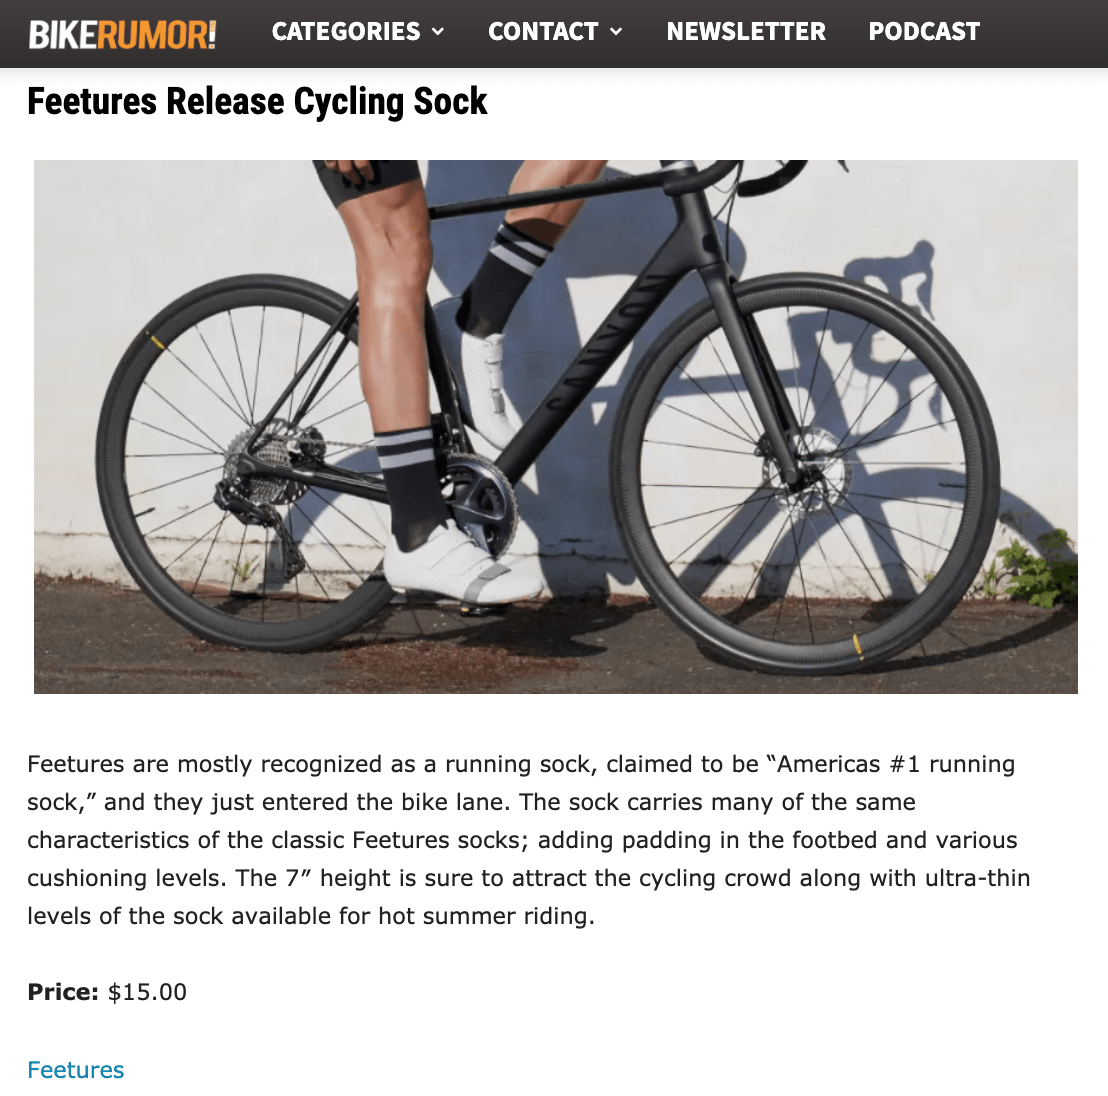 Image of Bike Rumor website saying Feetures Release Cycling Sock and picture of person on bike with white cycling shoes and black socks with a gray stripe.